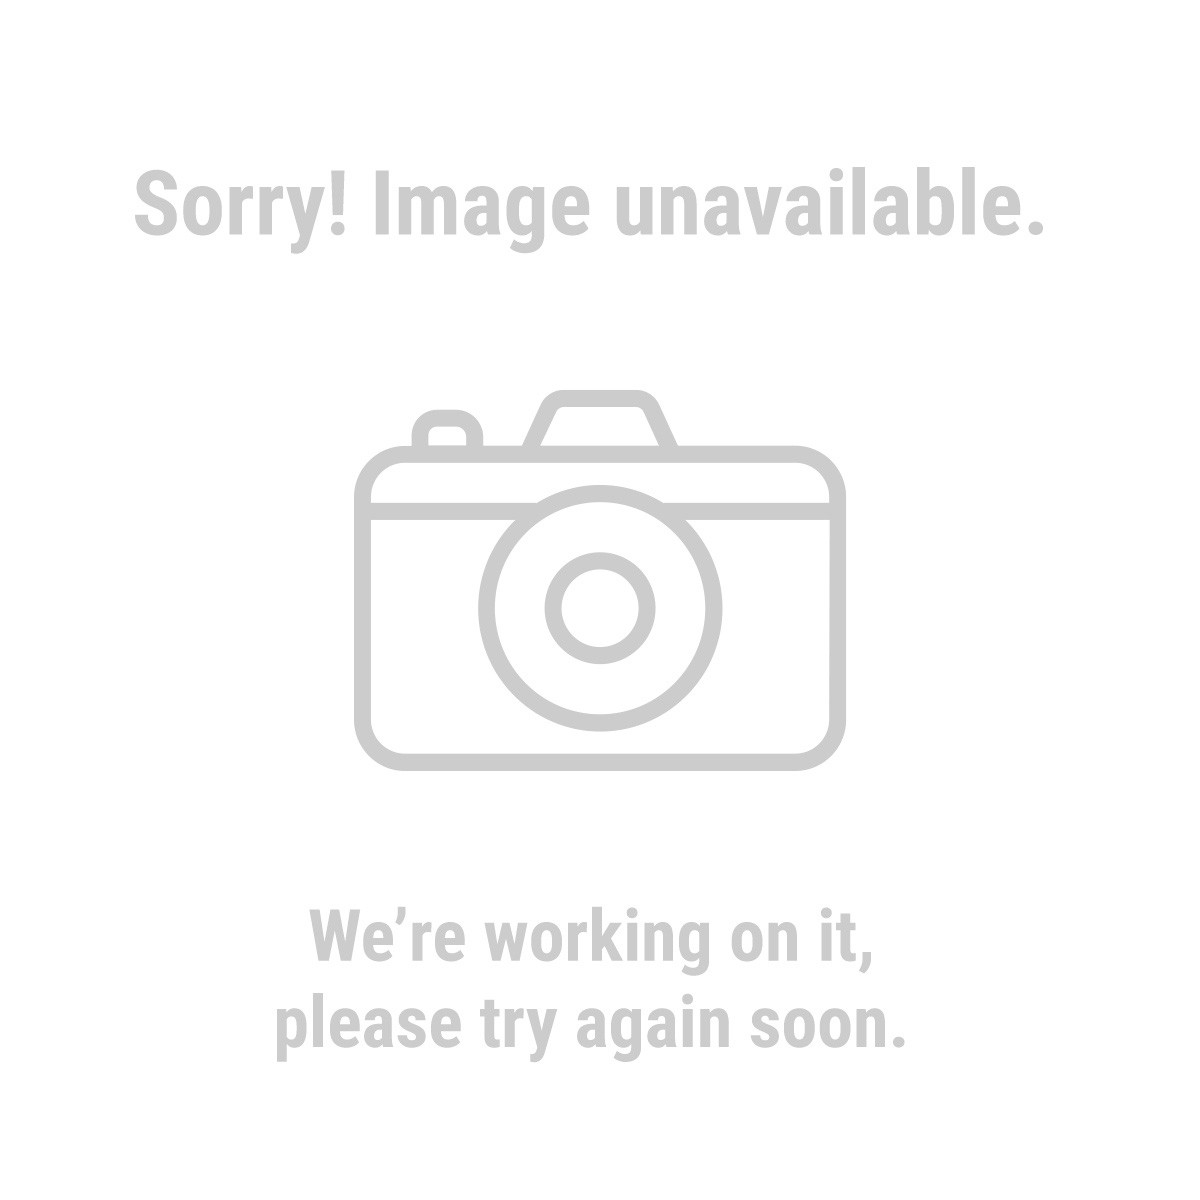 Western Safety 94237 Support Belt with Reflector - XXL